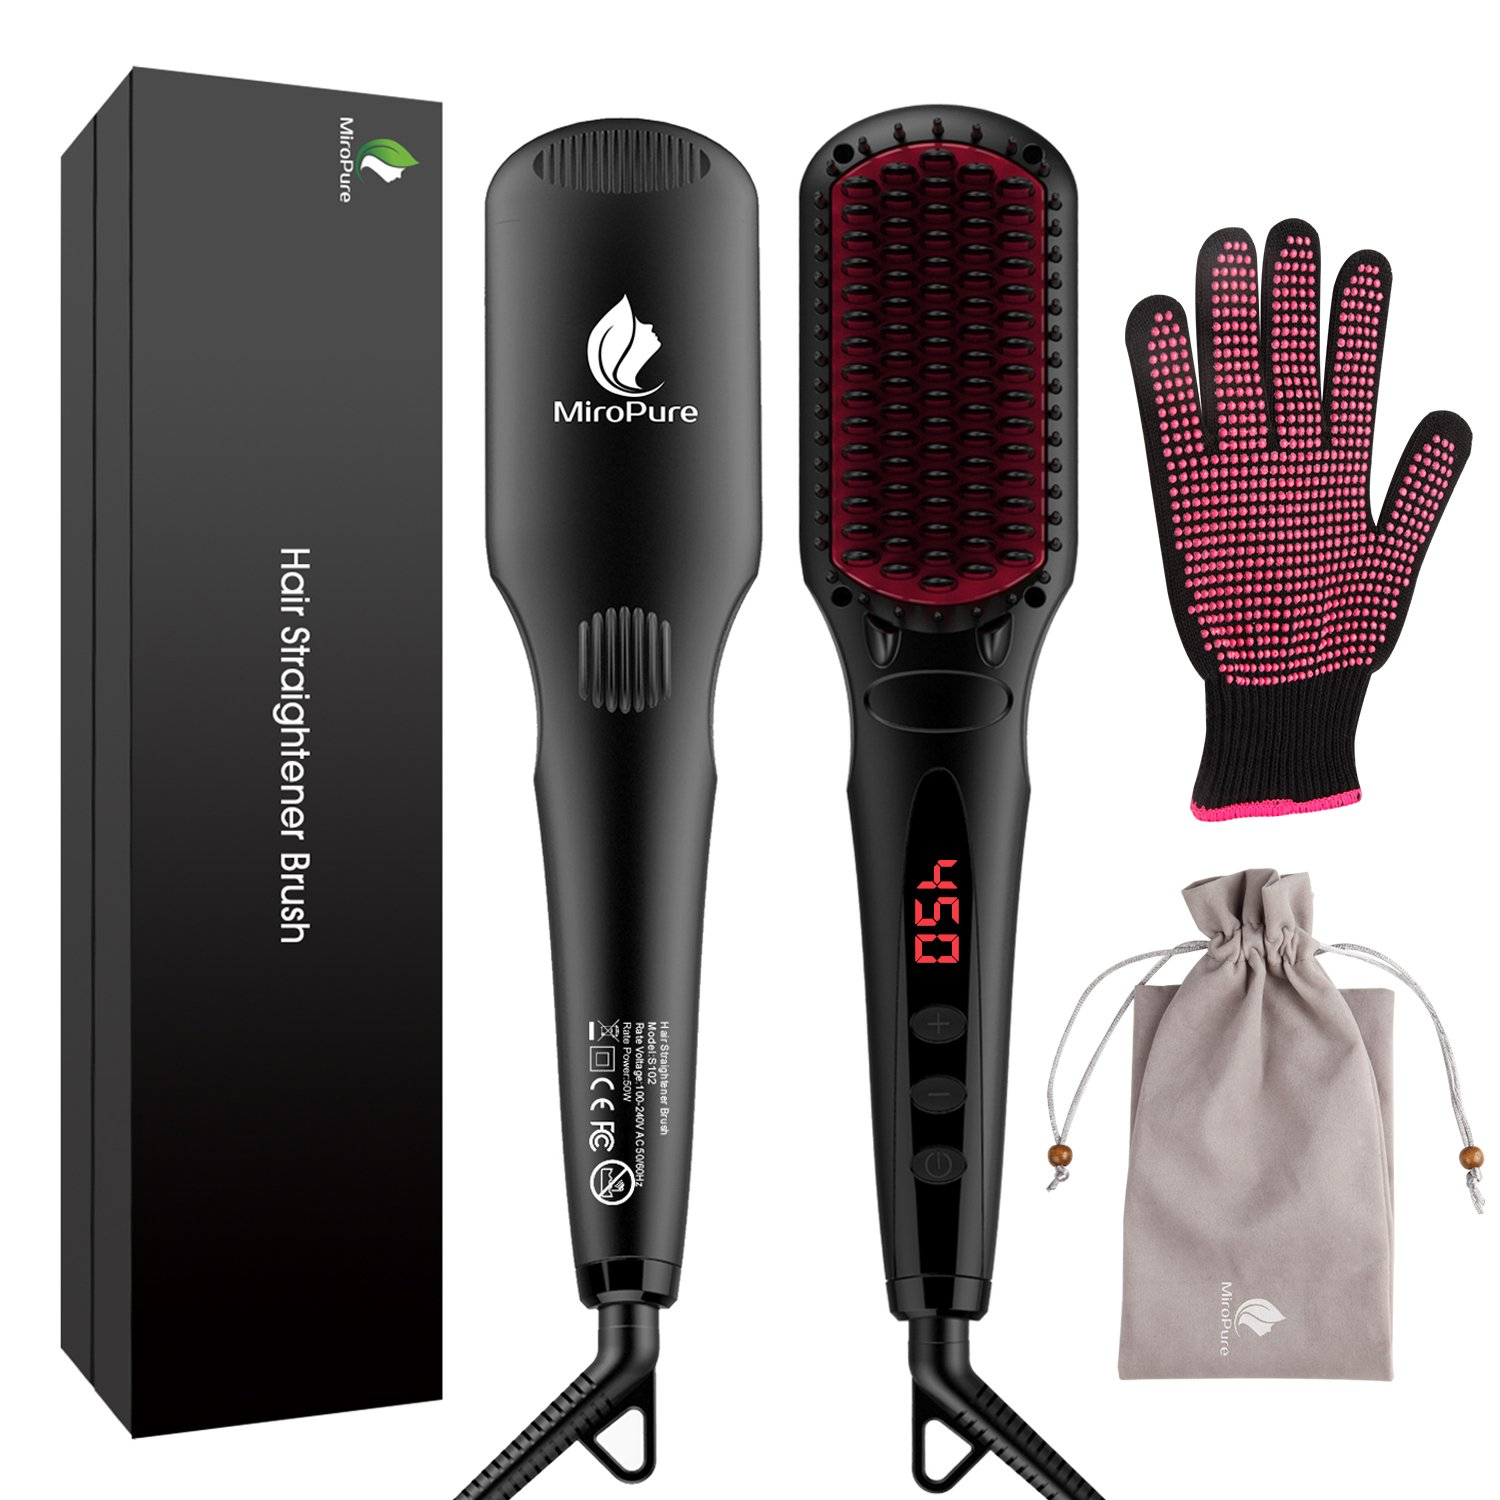 miropure 2 in 1 ionic hair straightener brush with heat - Elcea Coloration